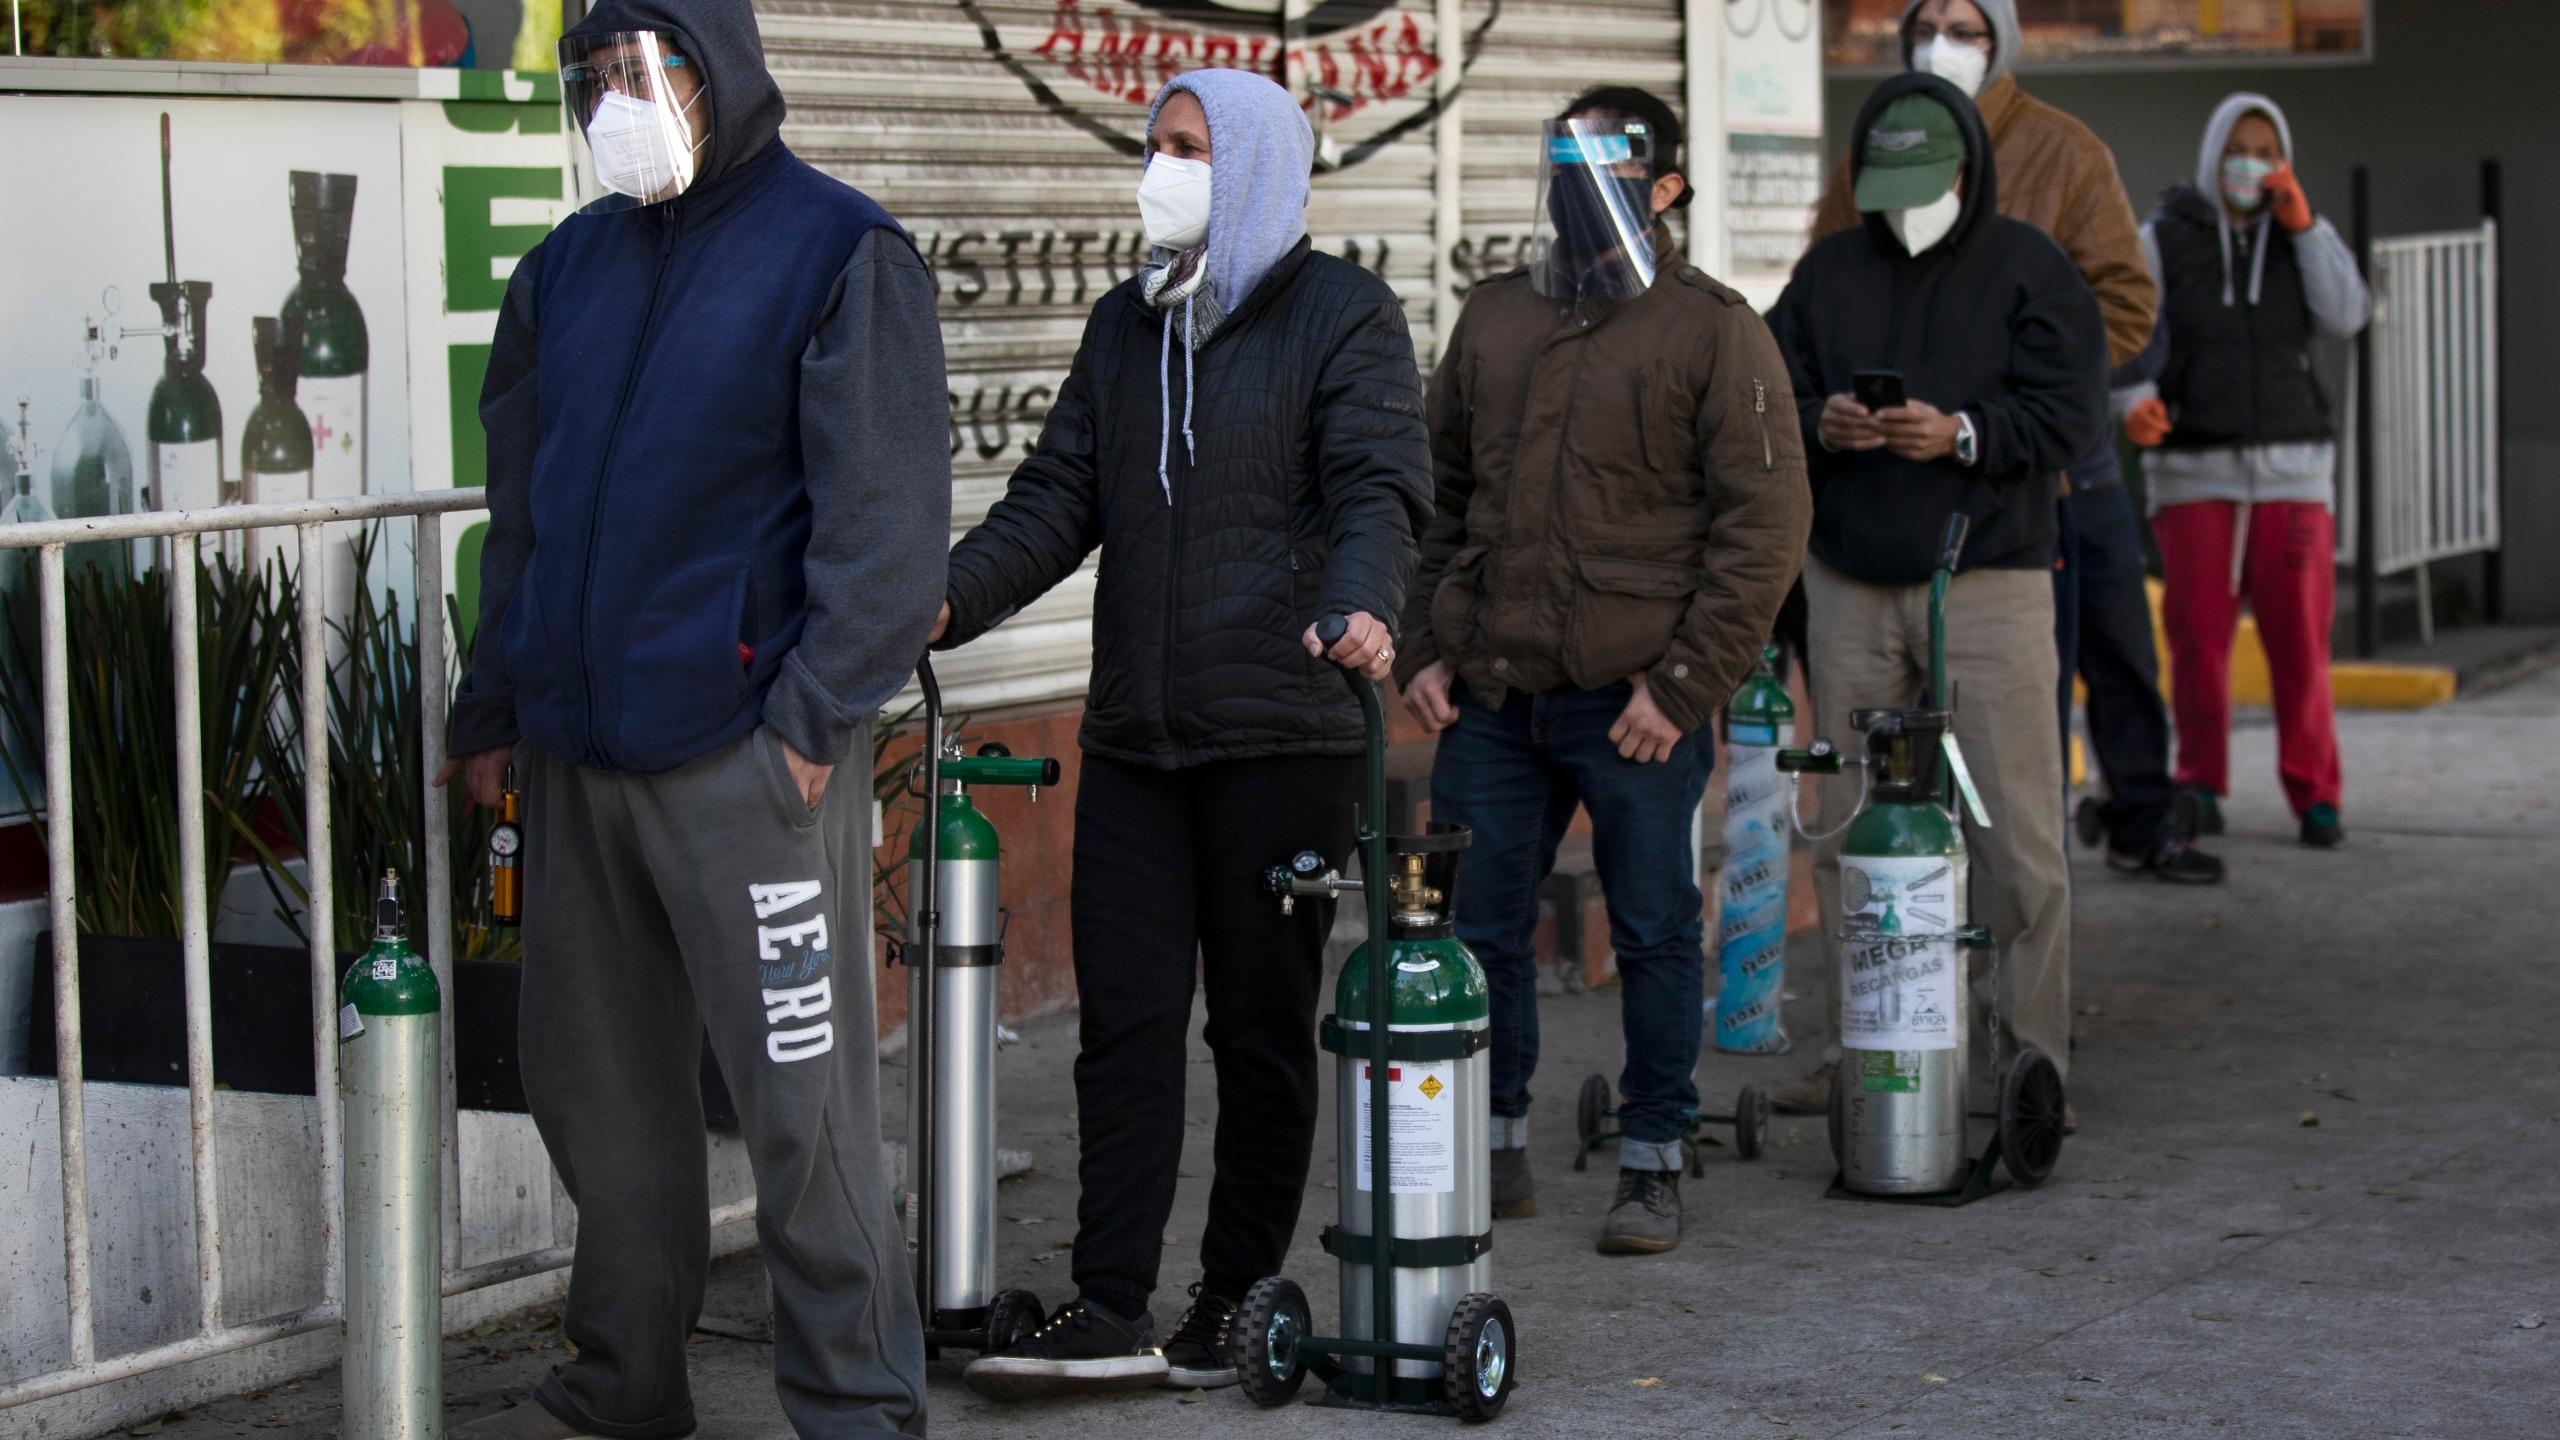 People line up with empty oxygen tanks to refill for family members sick with COVID-19 outside an oxygen store where dozens wait their turn in Mexico City, Thursday, Dec. 31, 2020. (Marco Ugarte/AP Photo)